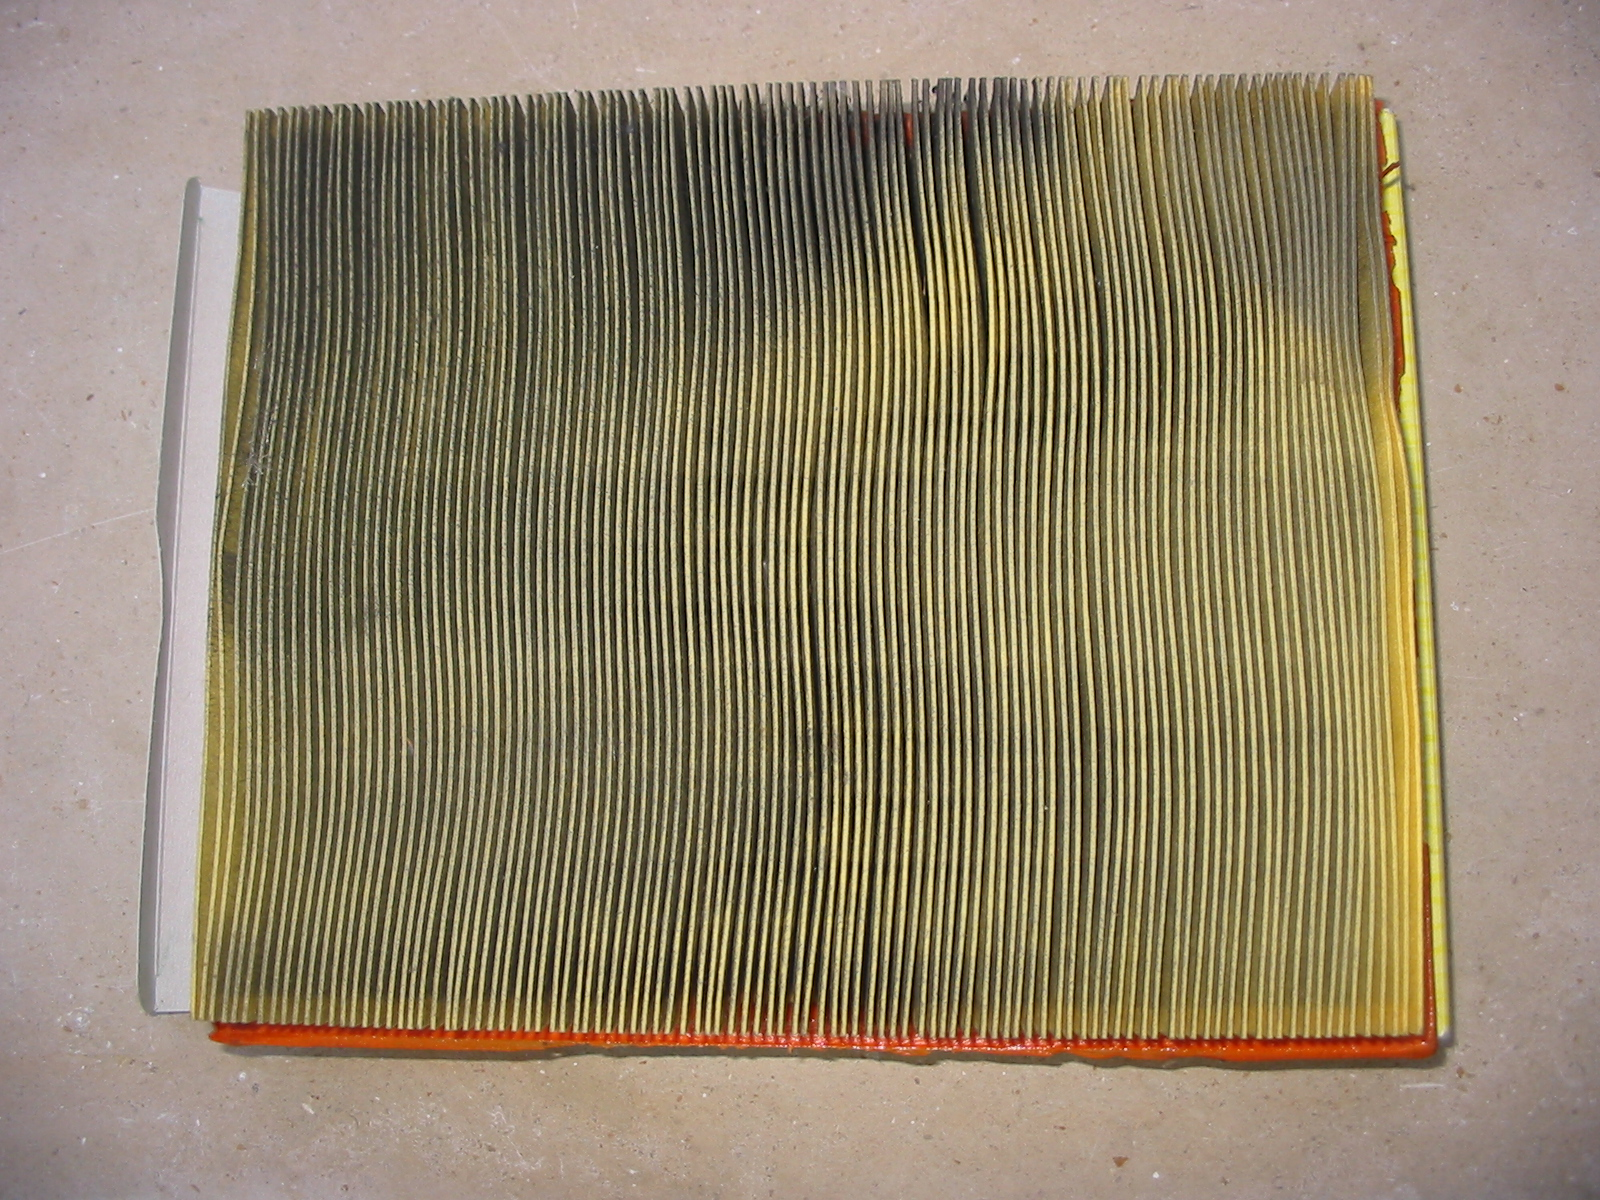 cabin_air_filter why is my car's a c blowing hot air? bluedevil products should a fuse box be warm at bakdesigns.co